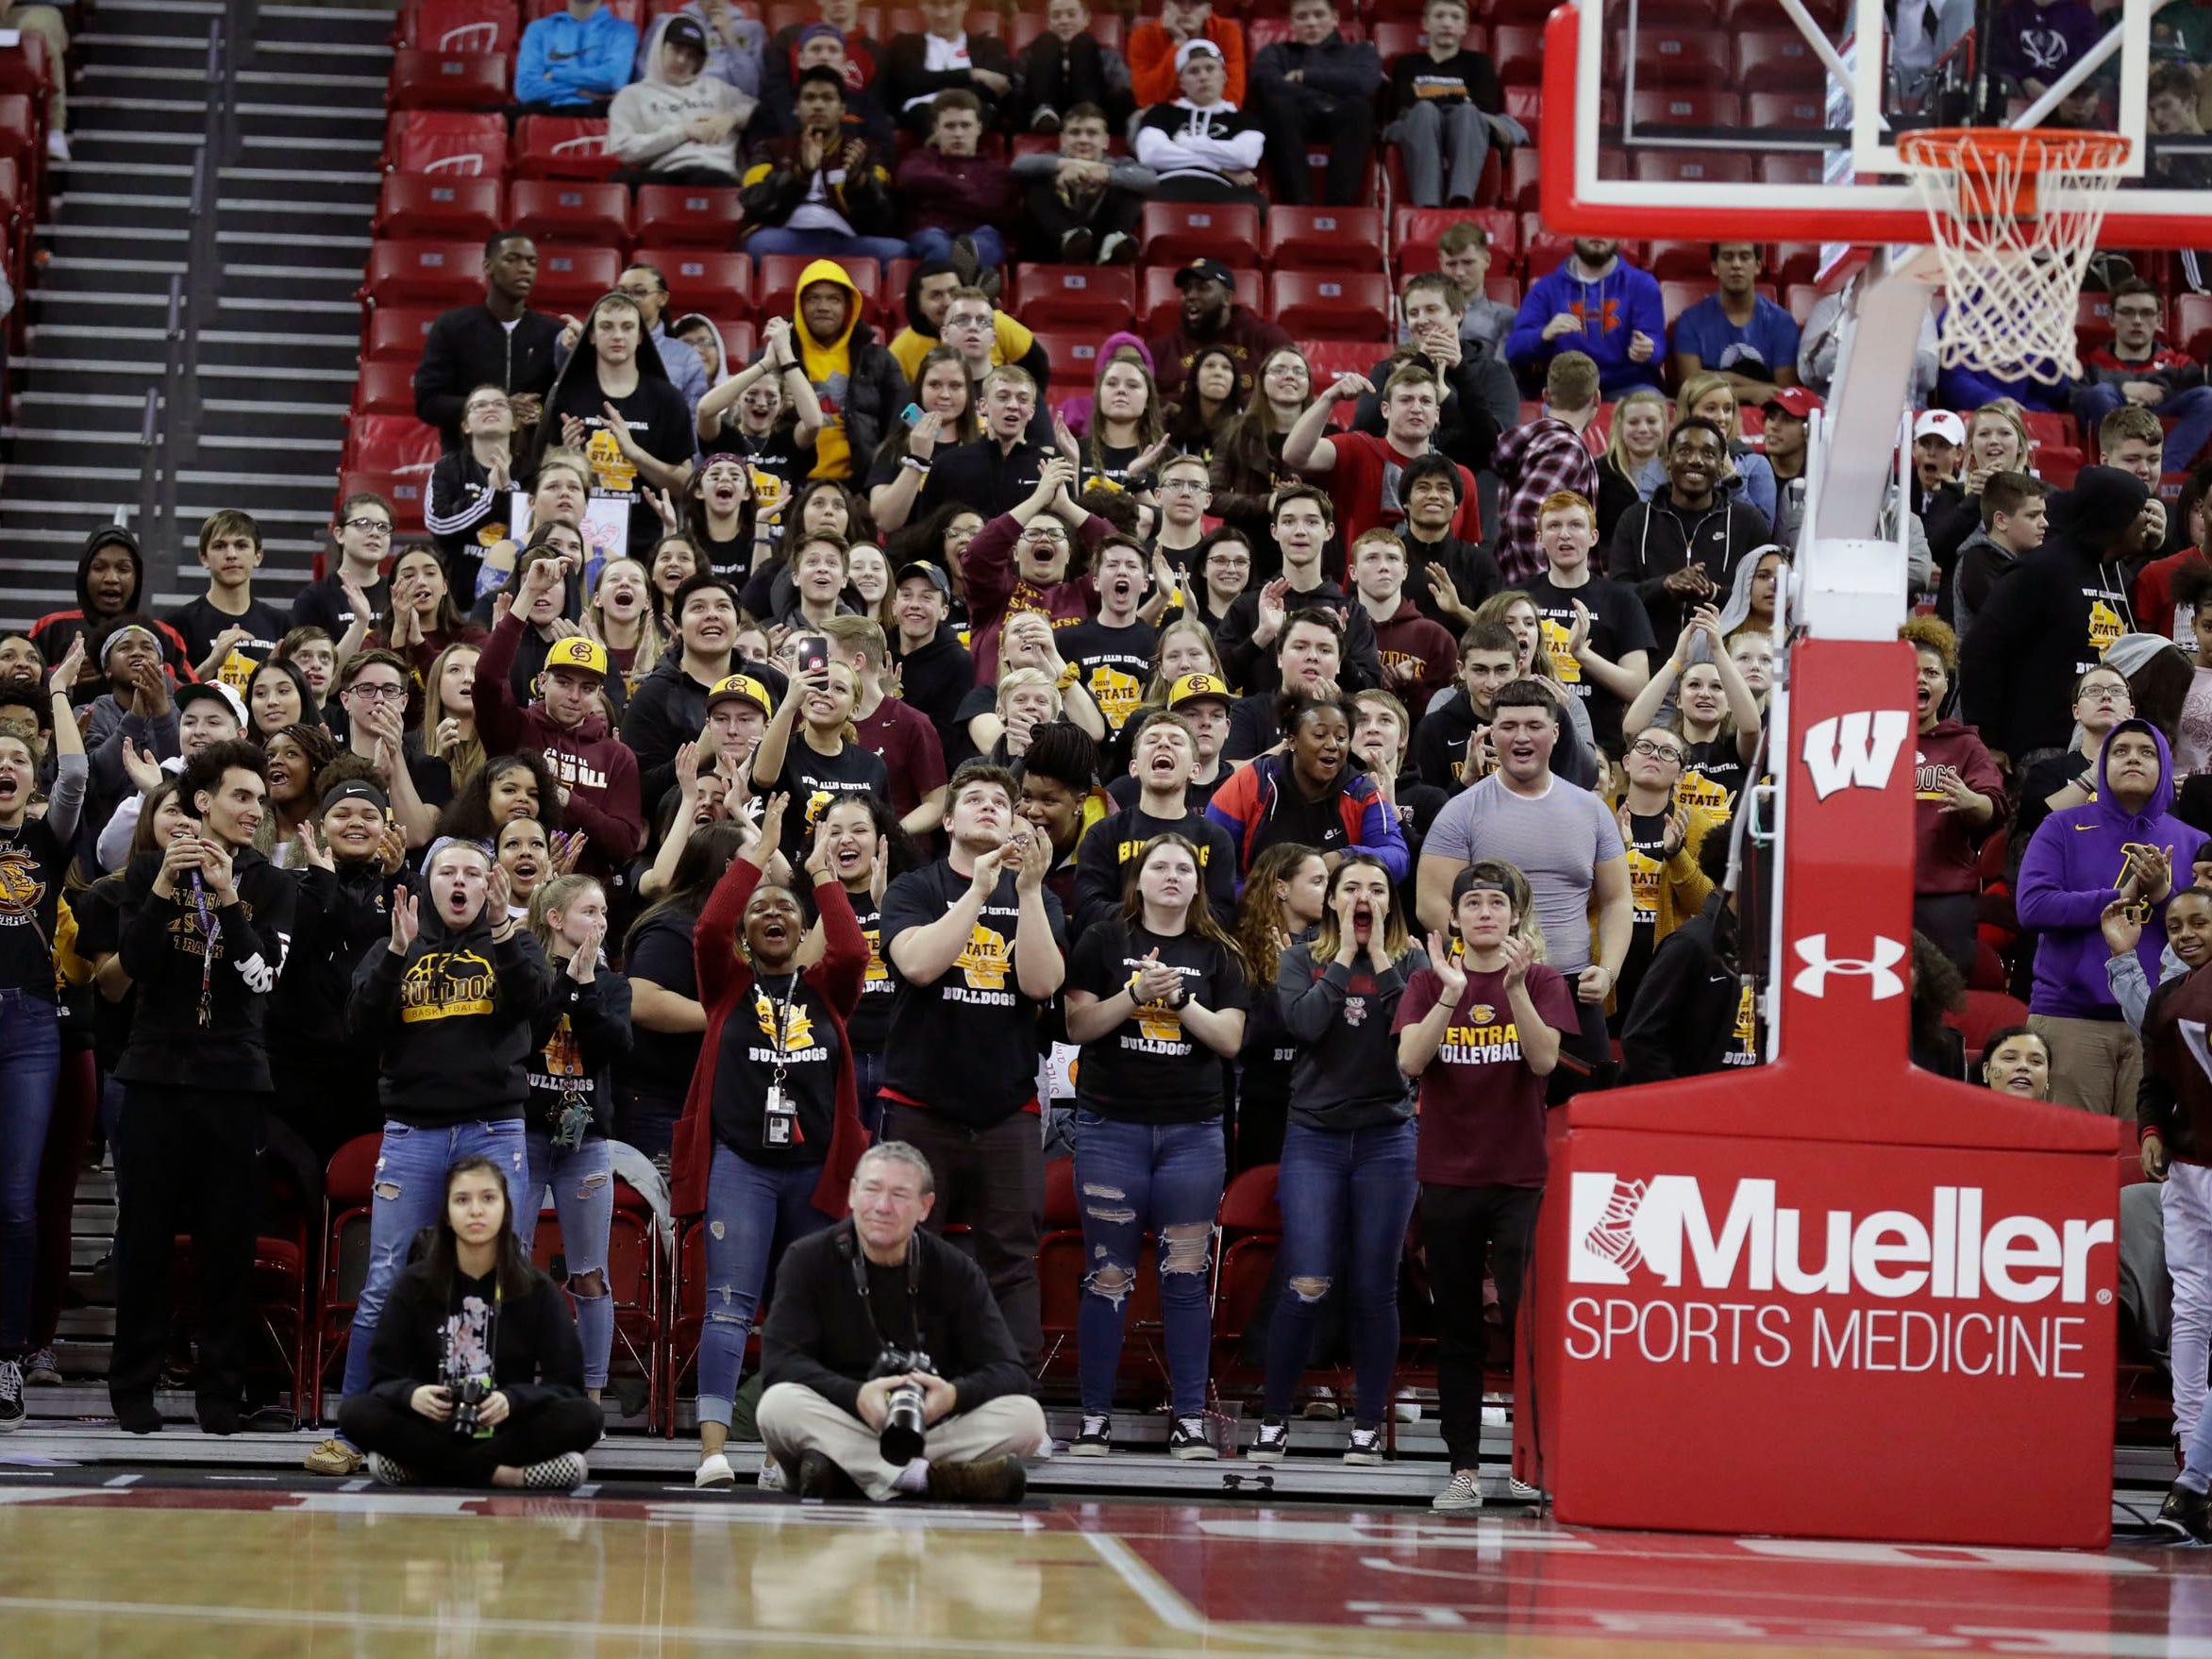 West Allis Central students enjoy the WIAA state tournament action.